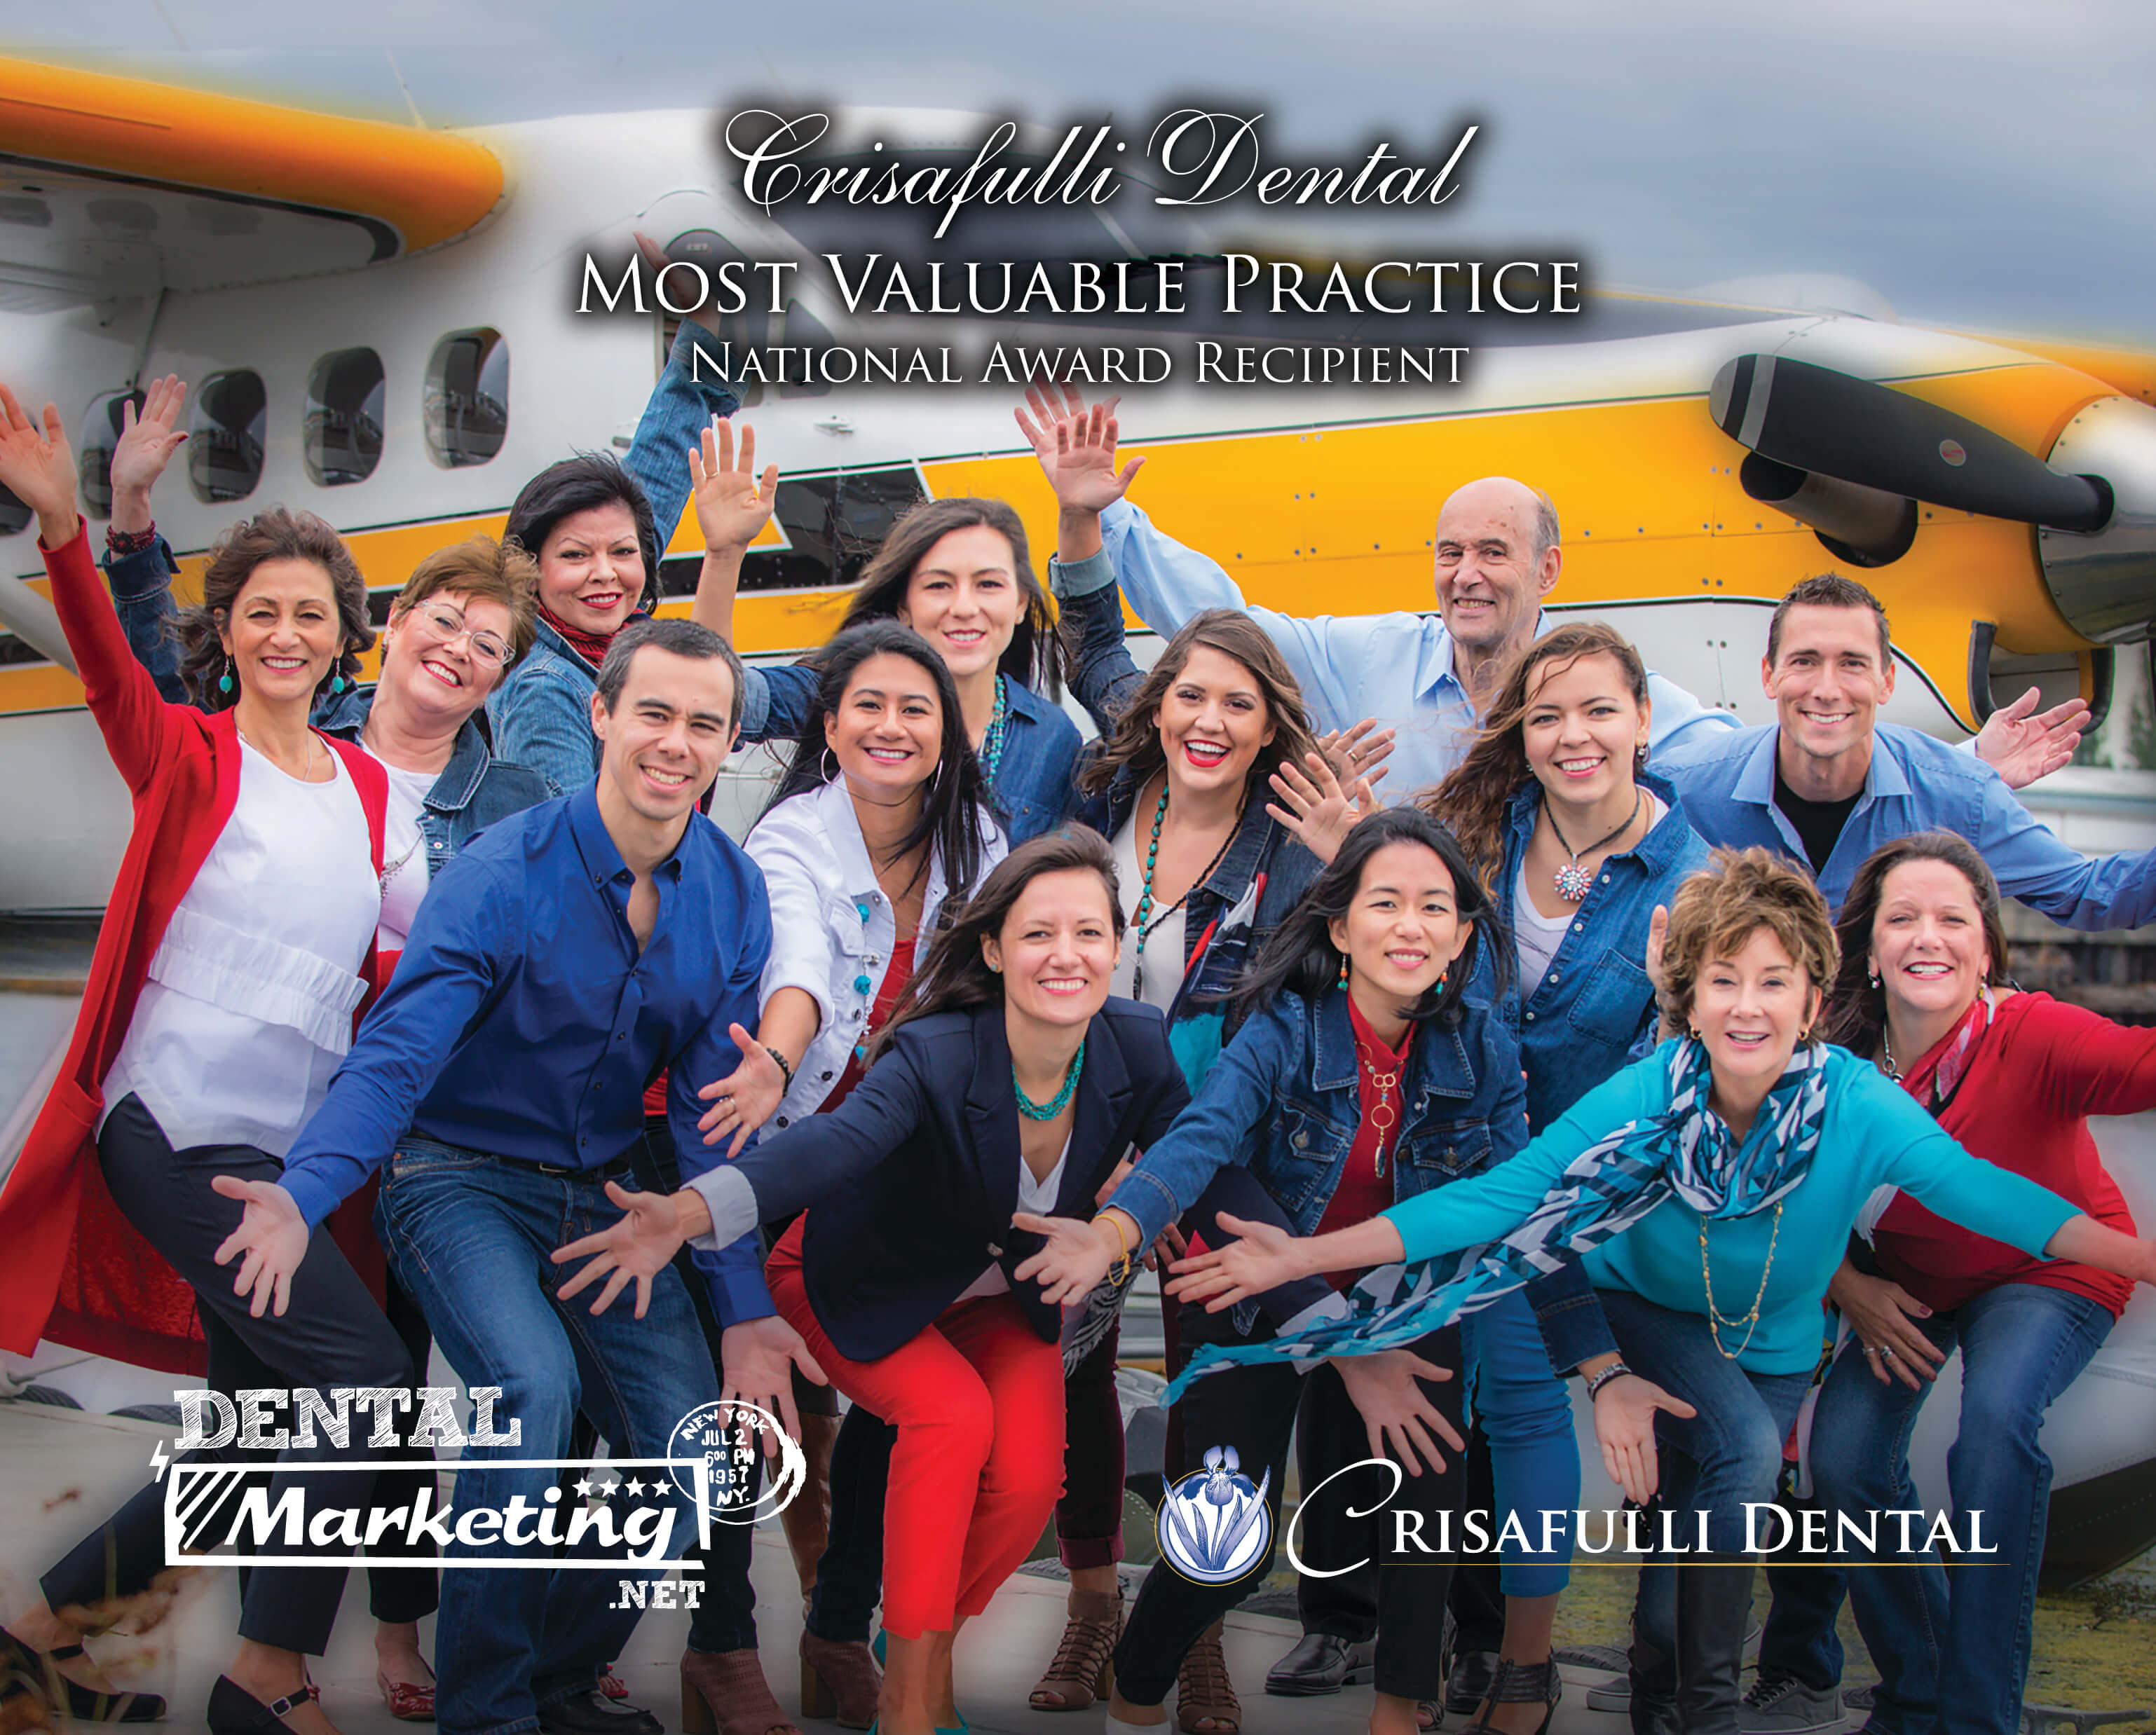 Crisafulli Dental Staff